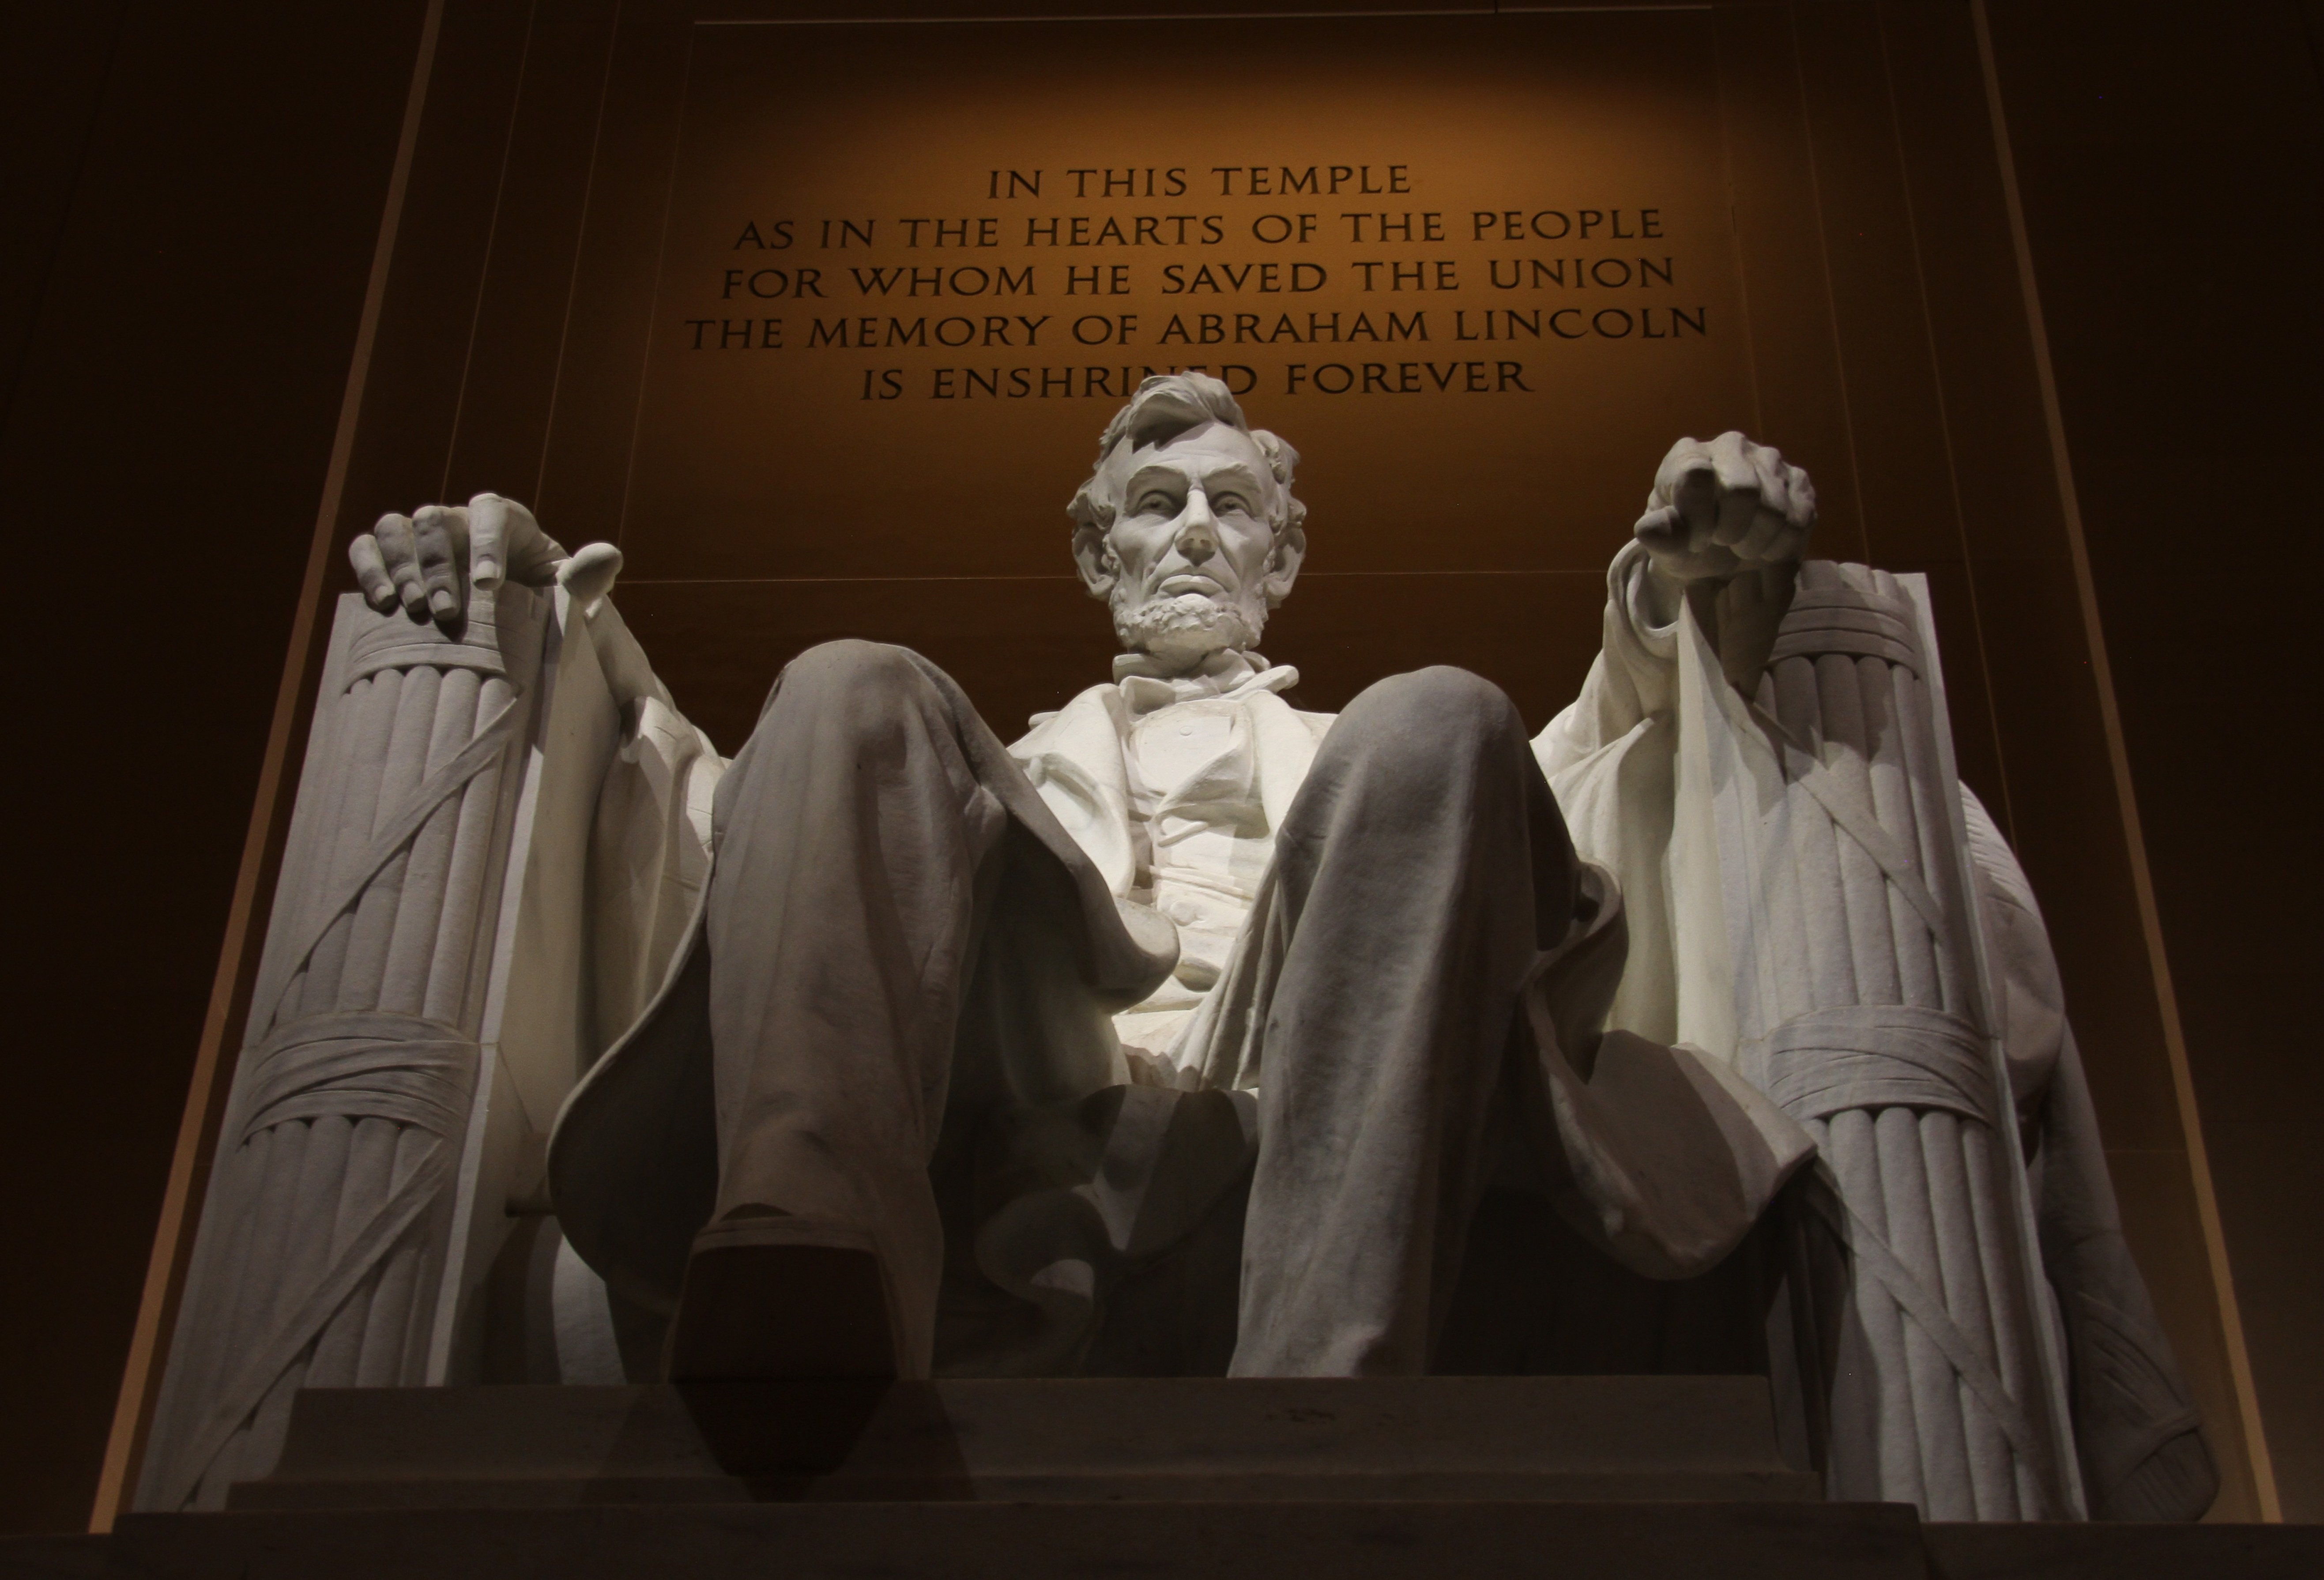 https://s3.us-east-2.amazonaws.com/withjamesbarr/genres/lincoln-statue.jpeg